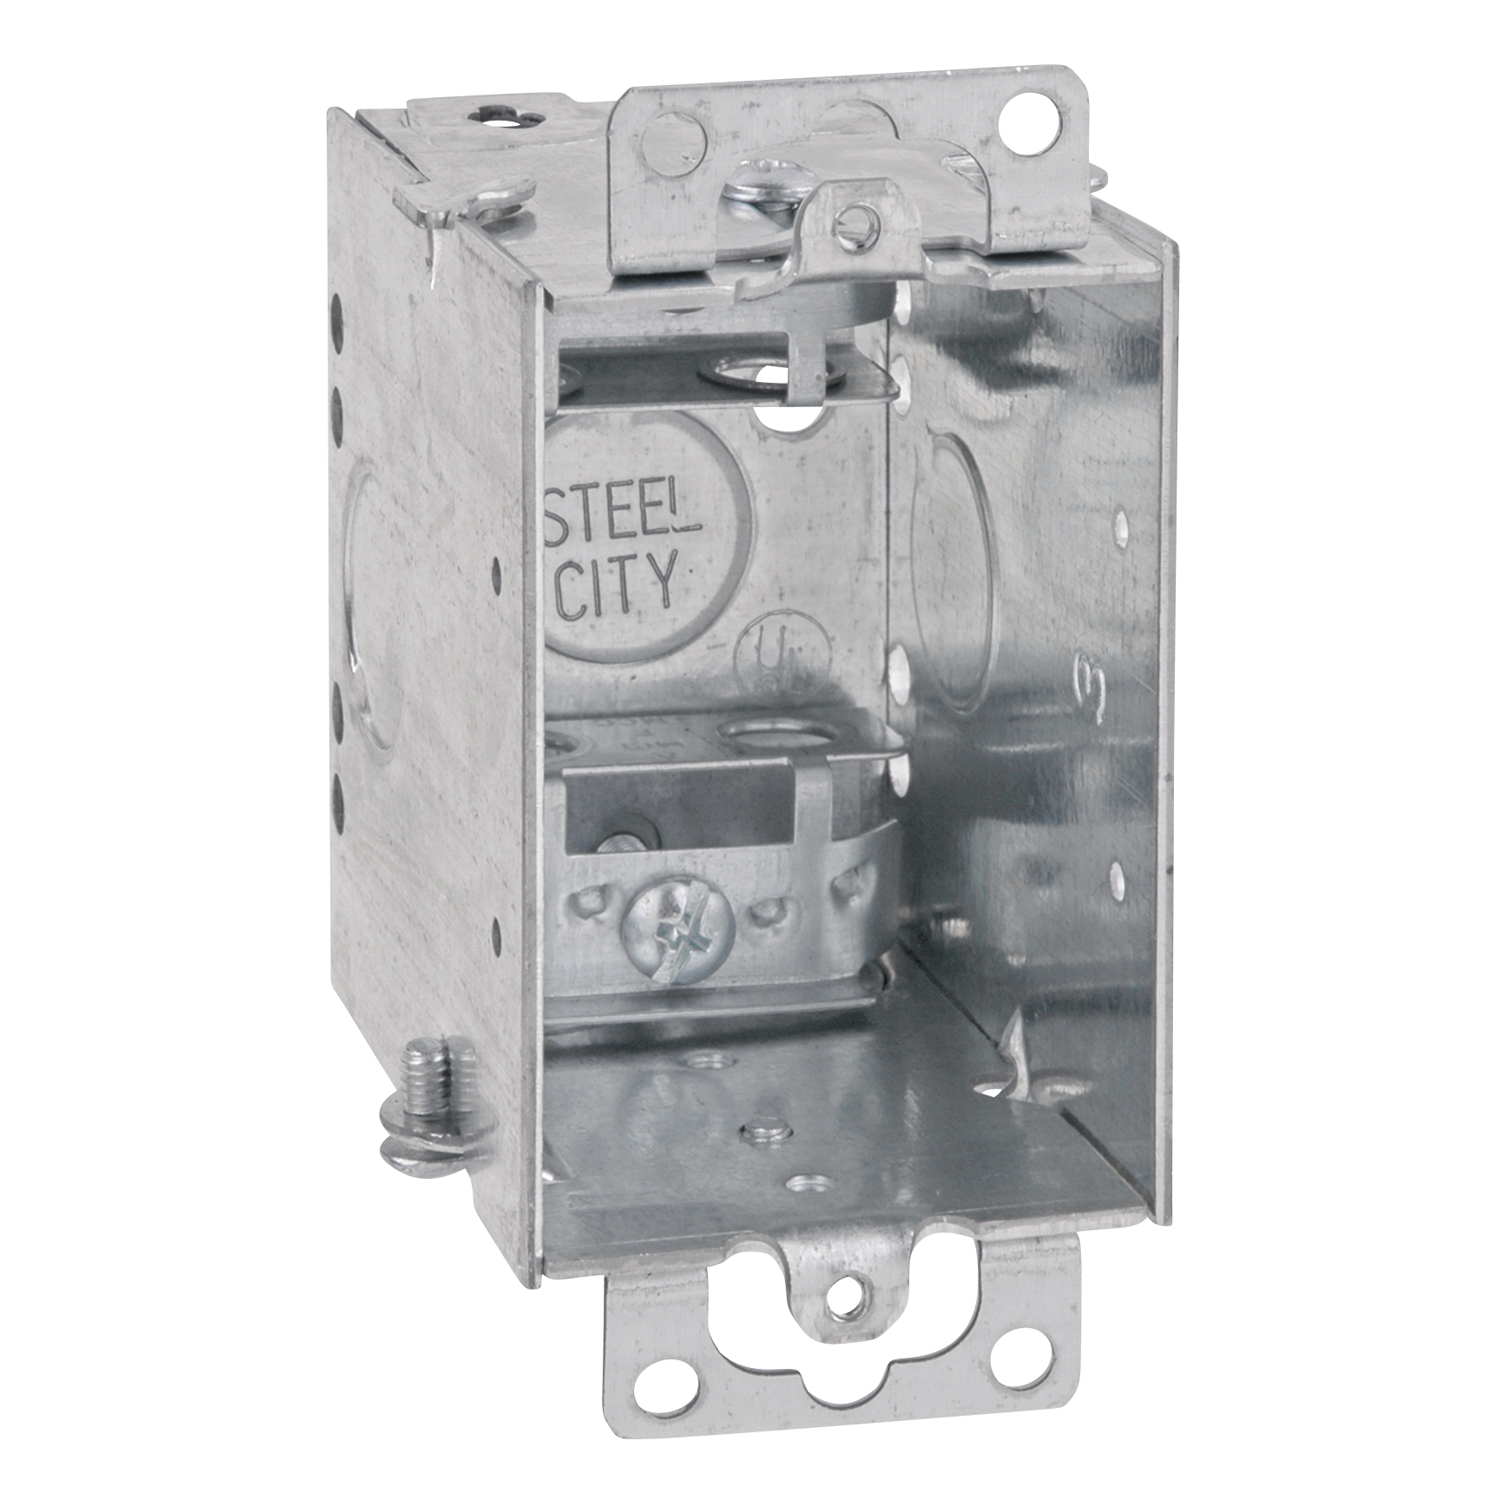 STCCWX-25 STL-CTY CWX-25 2-3/4D SW BOX W;Steel City® CWX-25 Gangable Welded Style Switch Box, Steel, 14 cu-in Capacity, 1 Gangs, 1 Outlets, 4 Knockouts